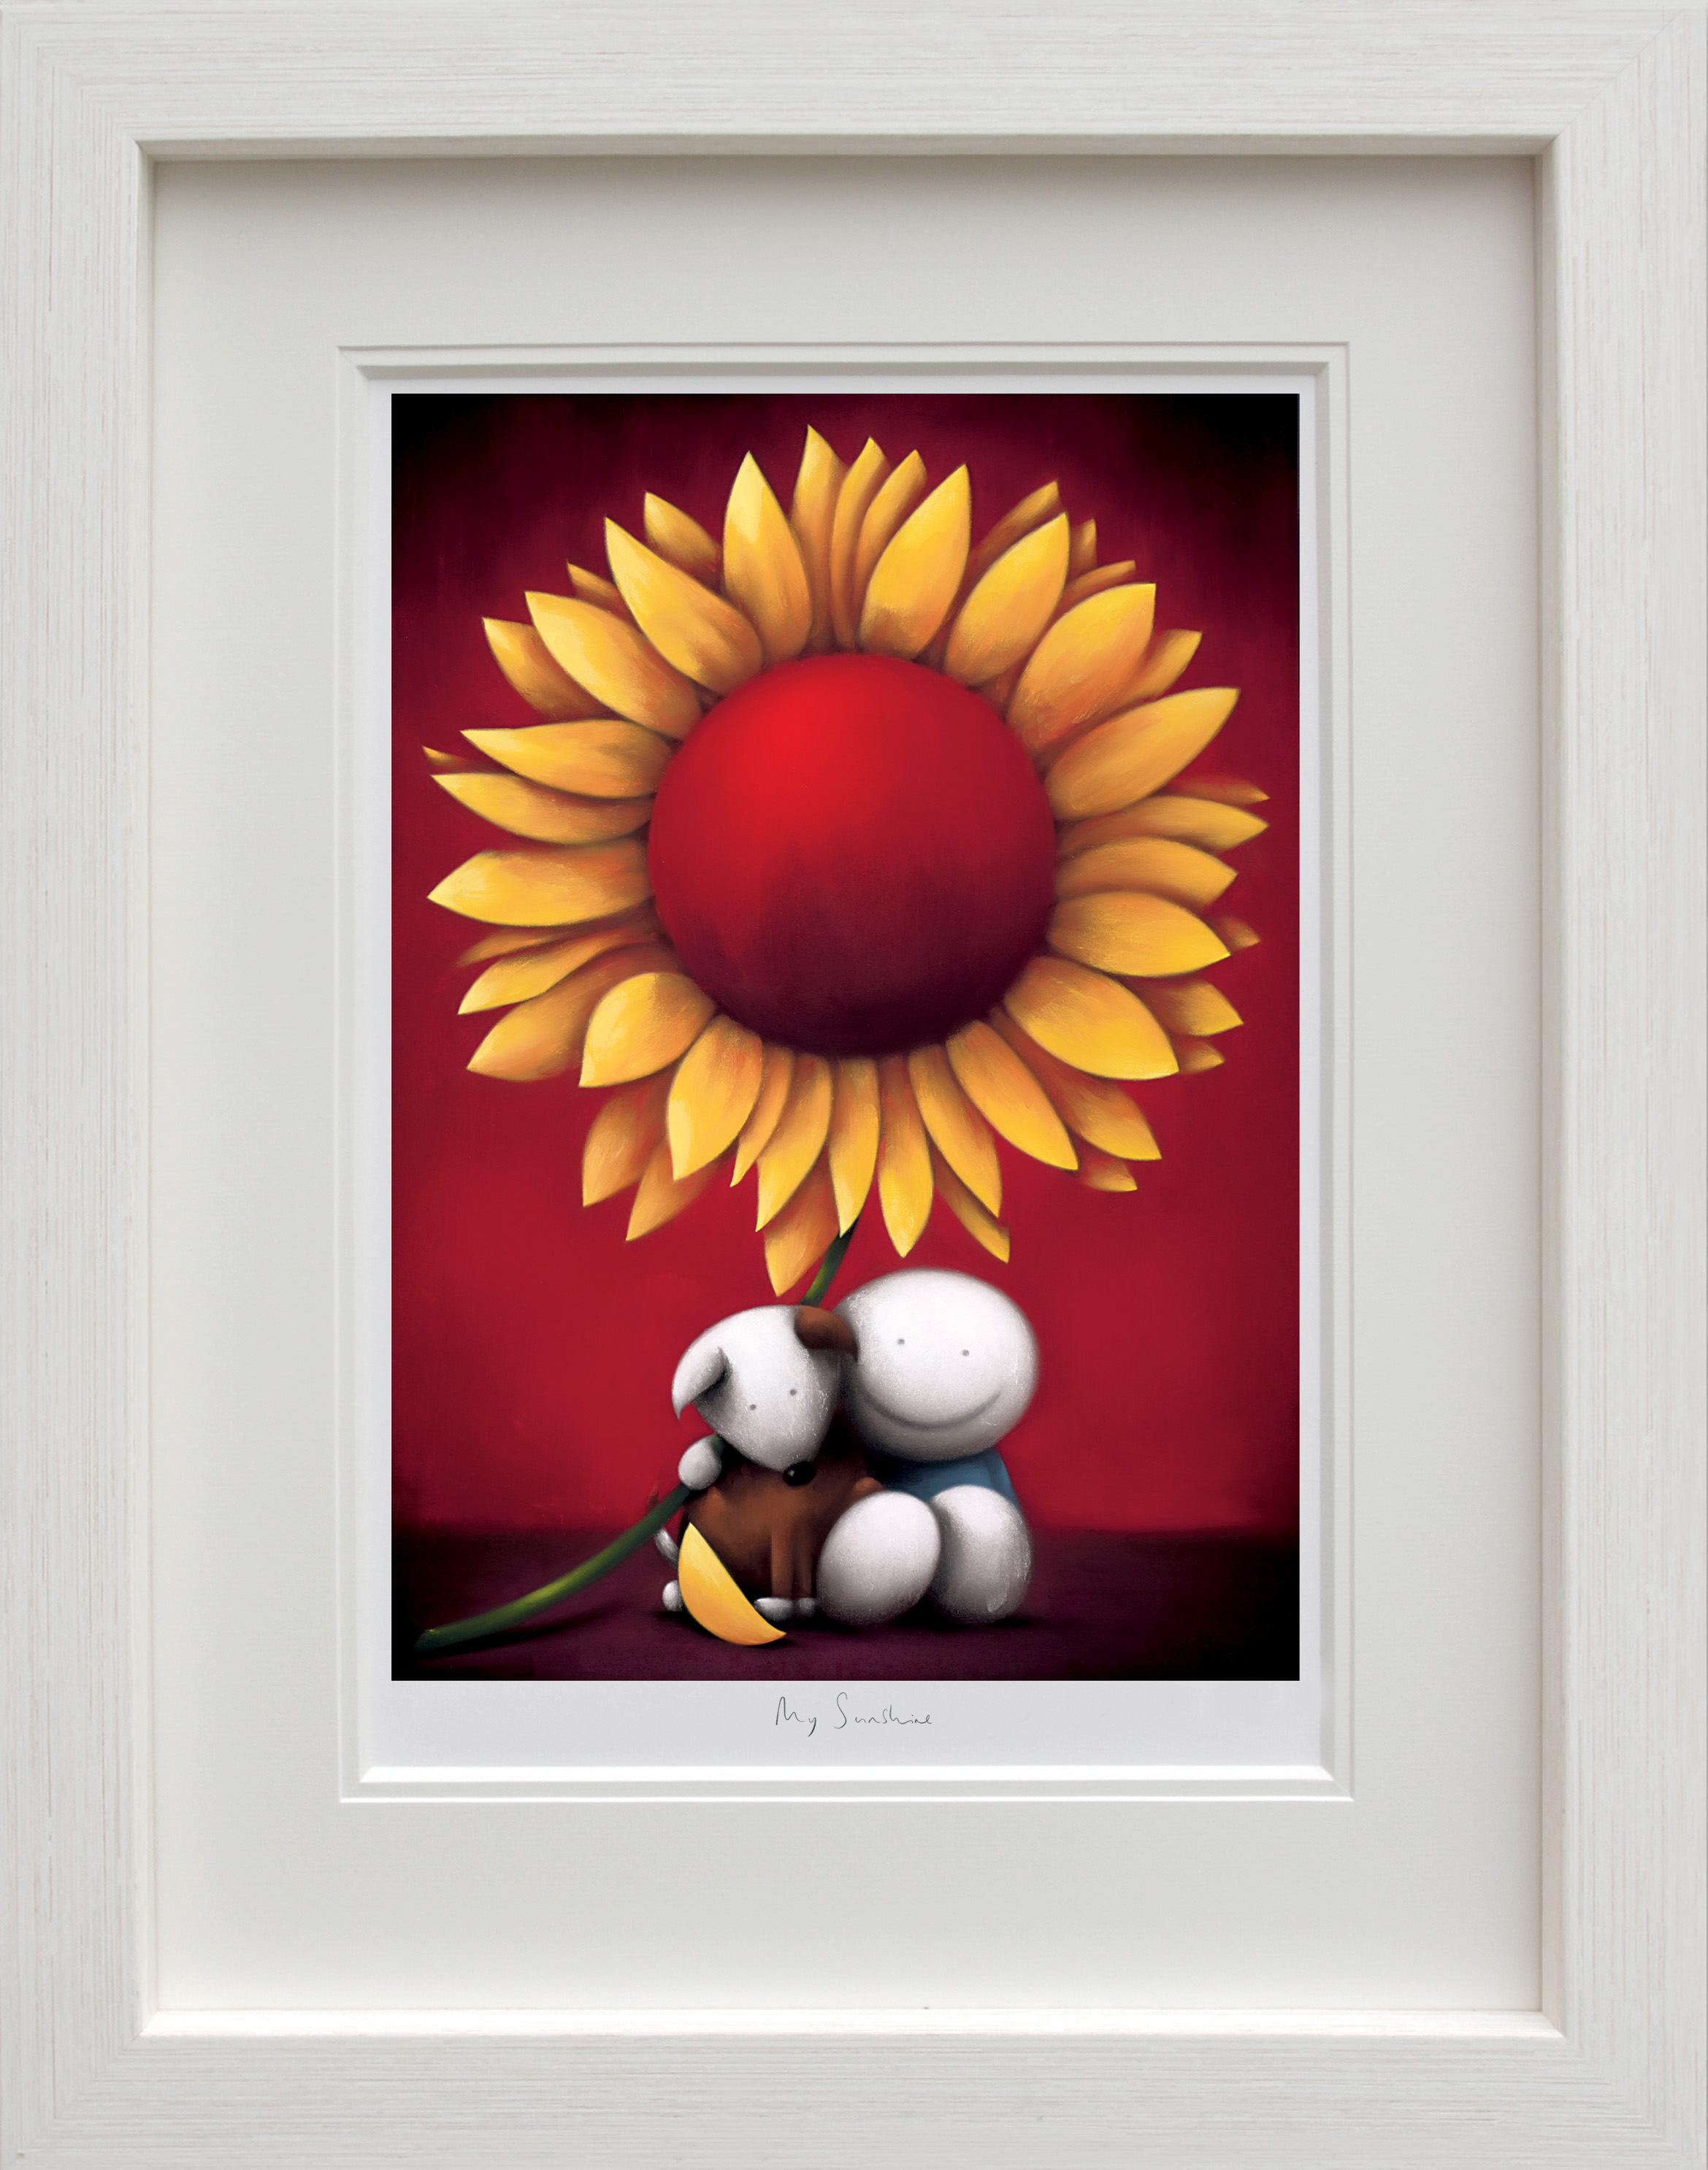 My Sunshine - Limited Edition Print By Doug Hyde